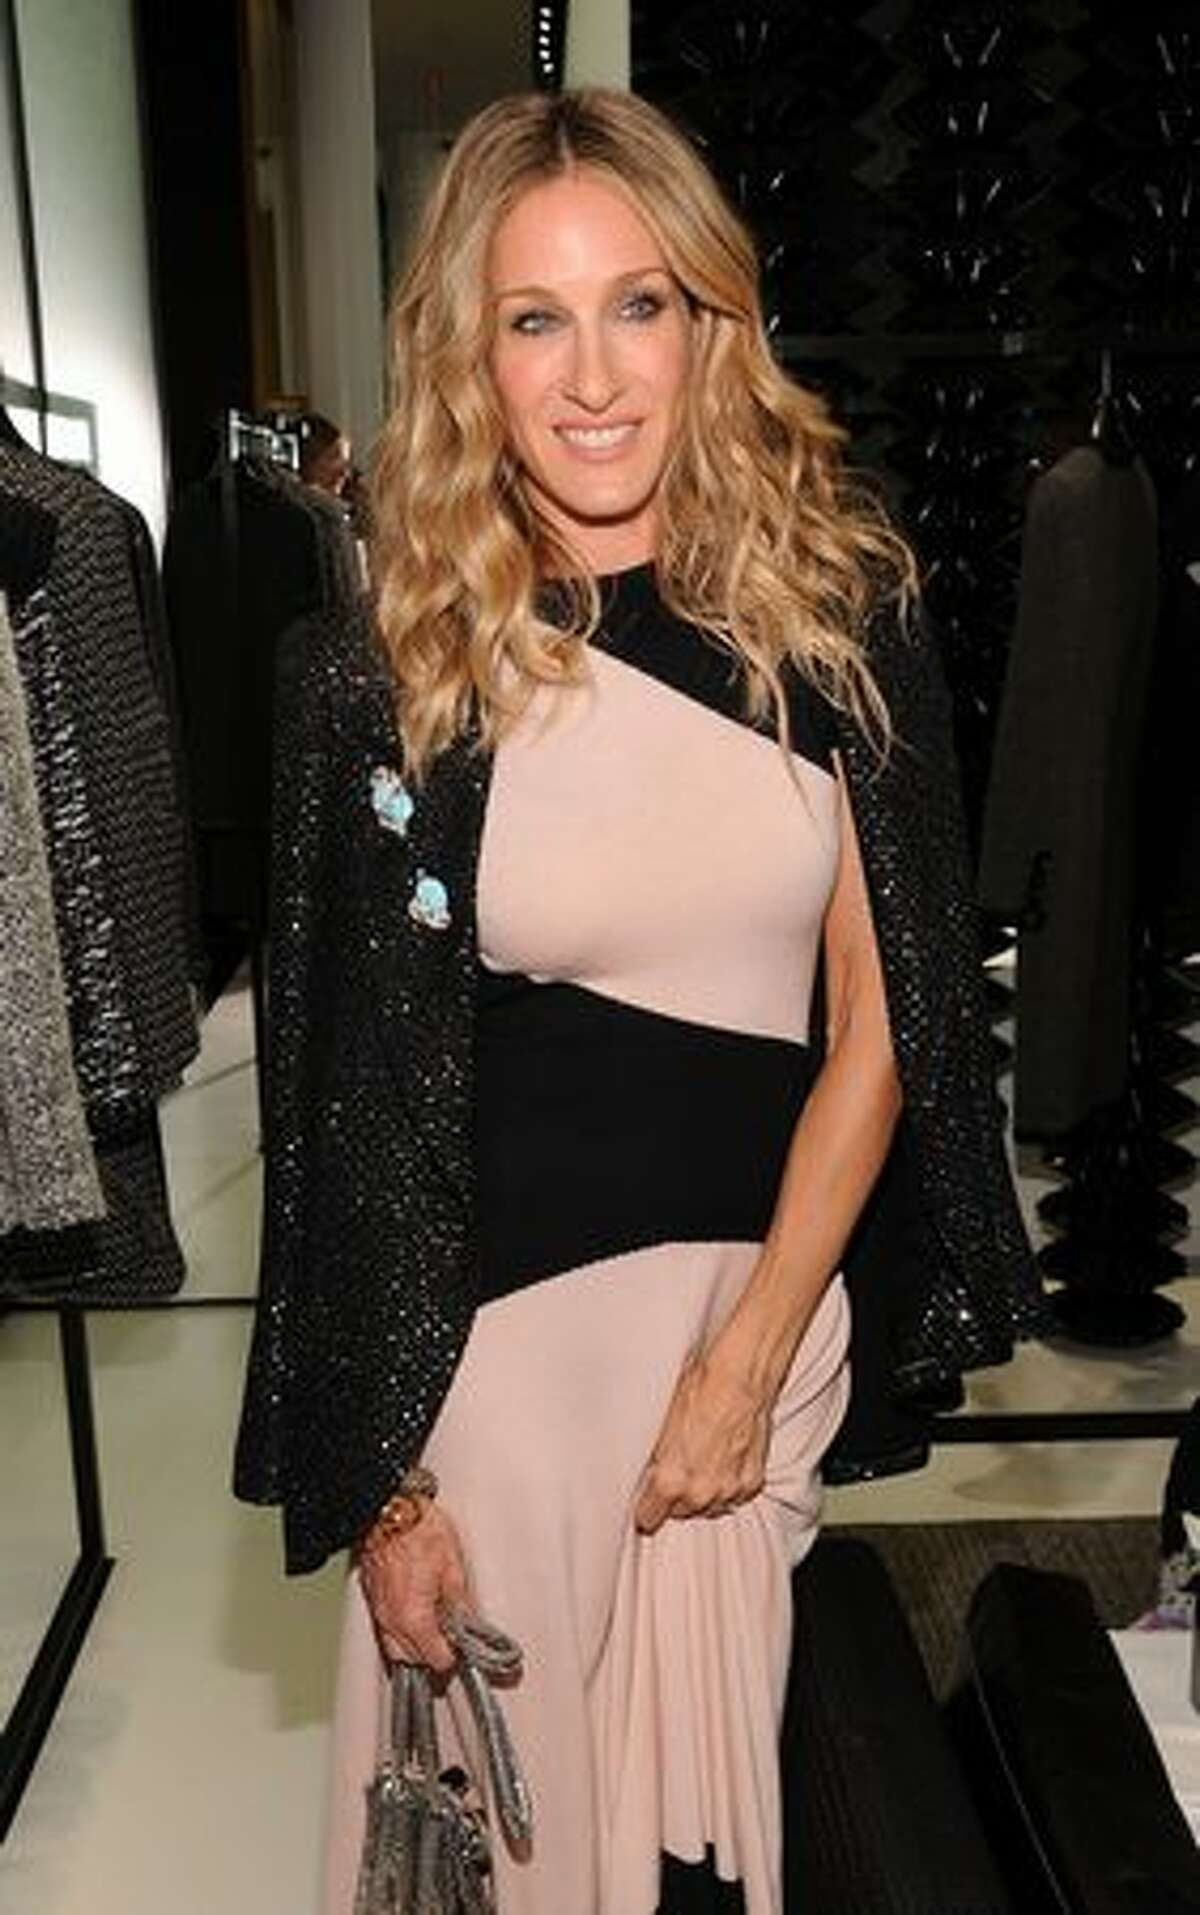 Actress Sarah Jessica Parker attends the reopening of the CHANEL SoHo Boutique at the Chanel Boutique Soho in New York City.